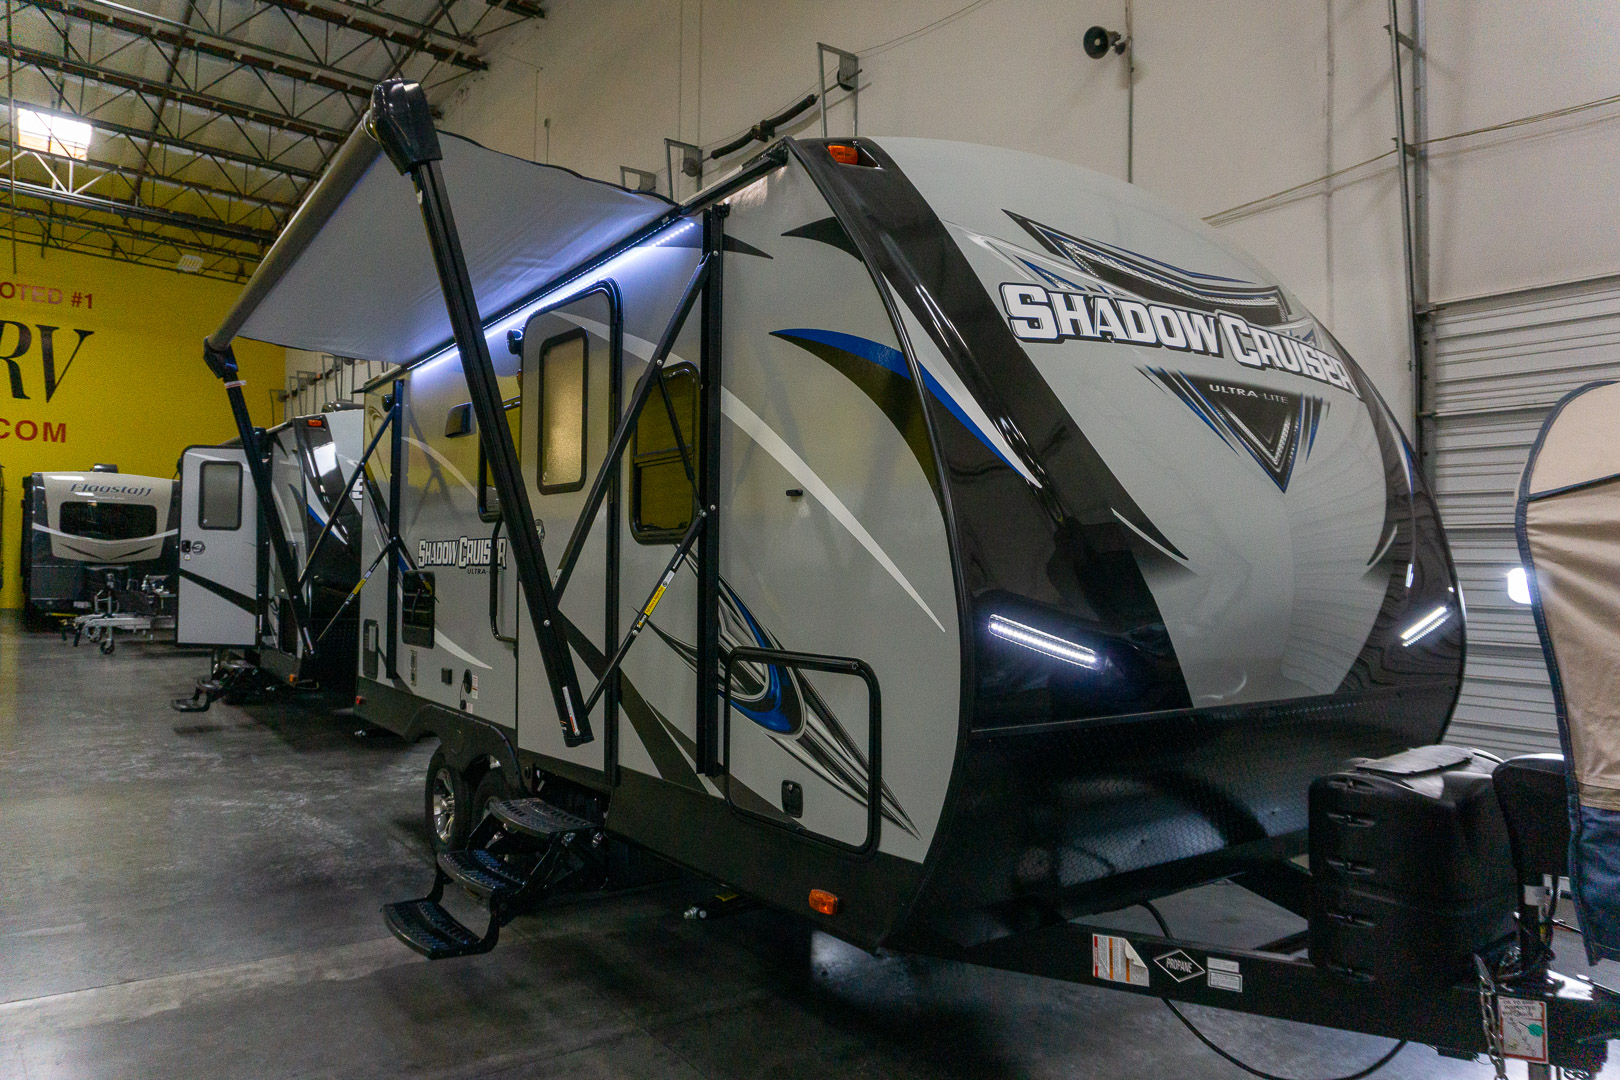 2019 CRUISER RV SHADOW CRUISER ULTRA LITE 193MBS